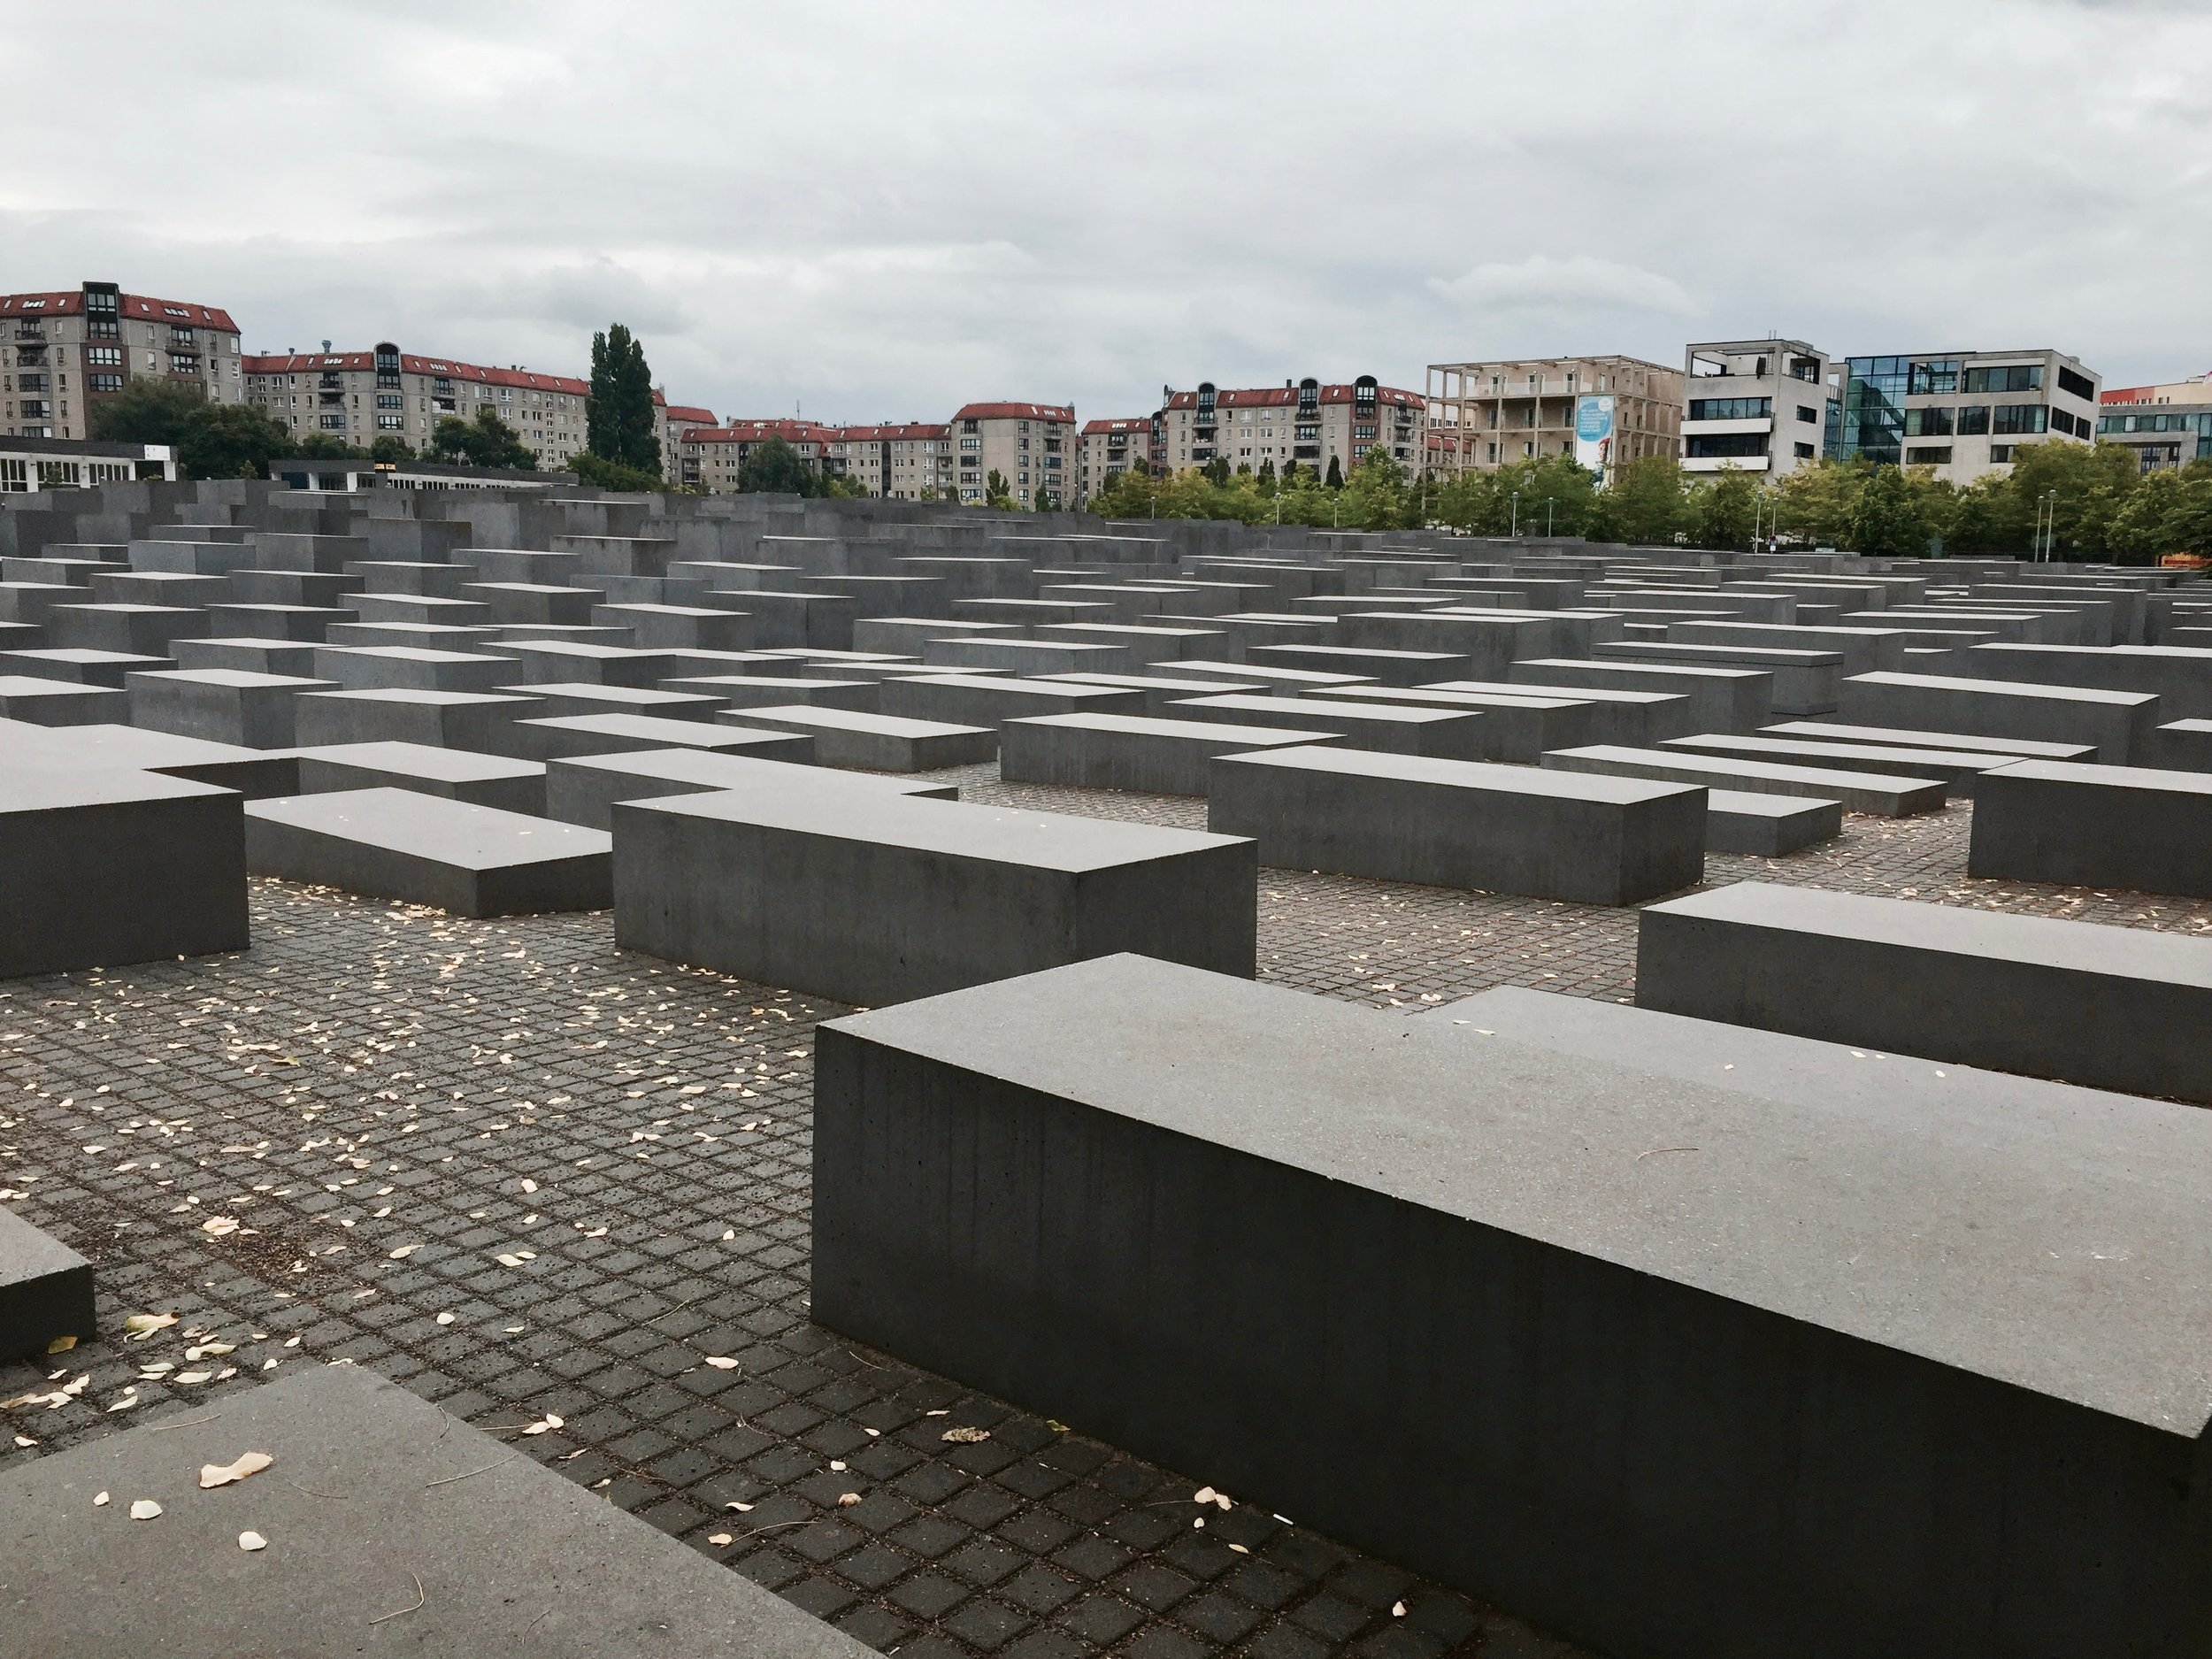 Memorial to the murdered jews - out of respect, do not run through the memorial